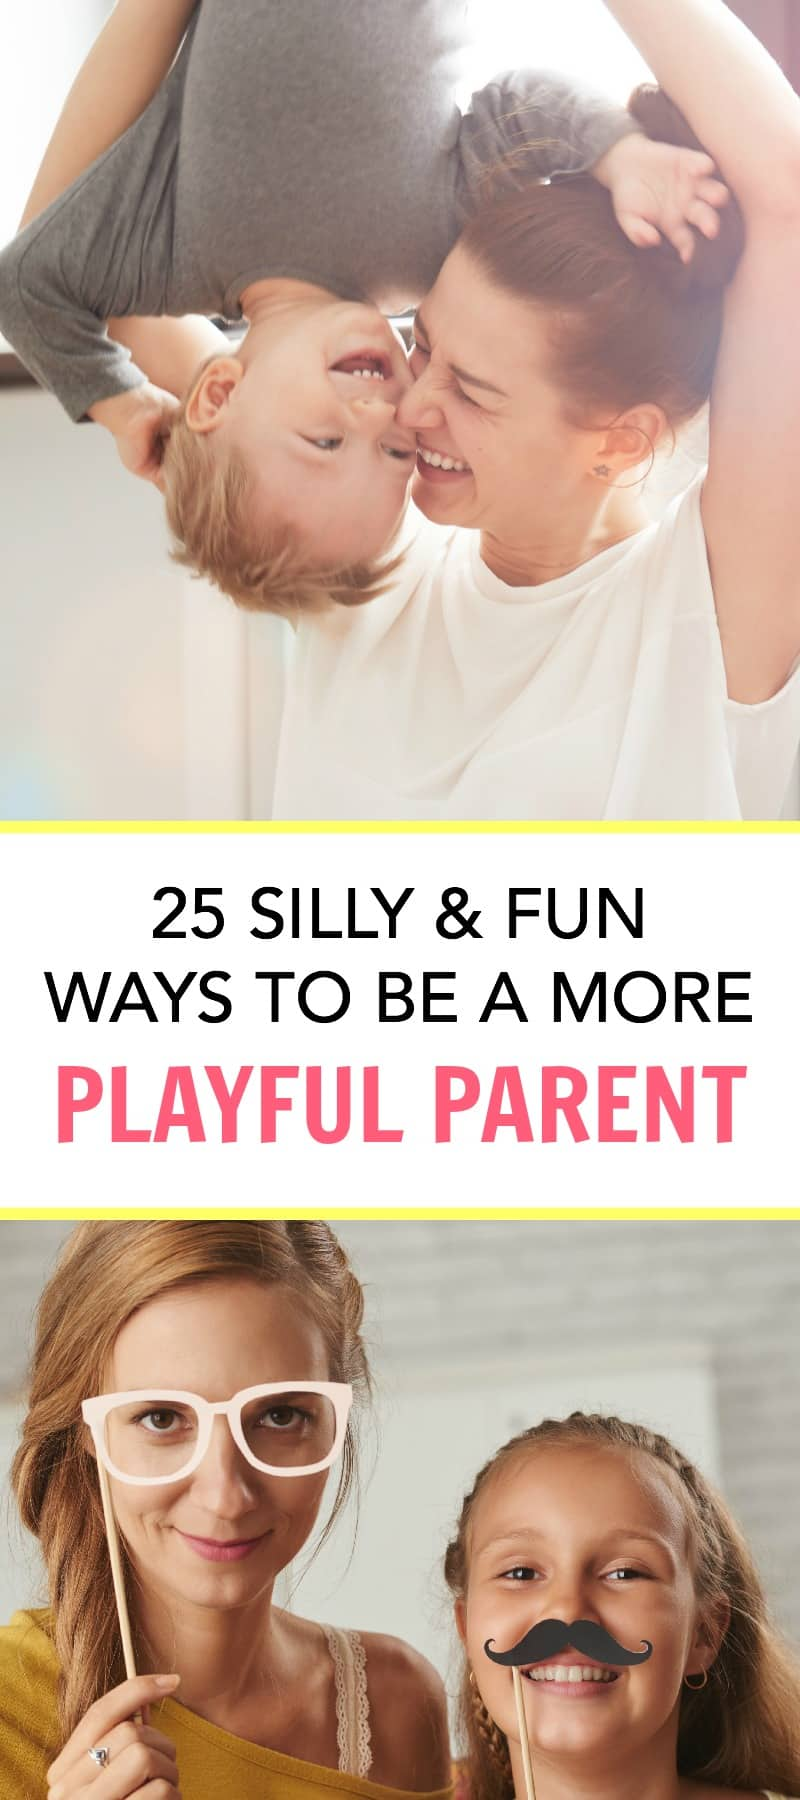 25 Fun Ways to be a More Playful Parent With Your Children